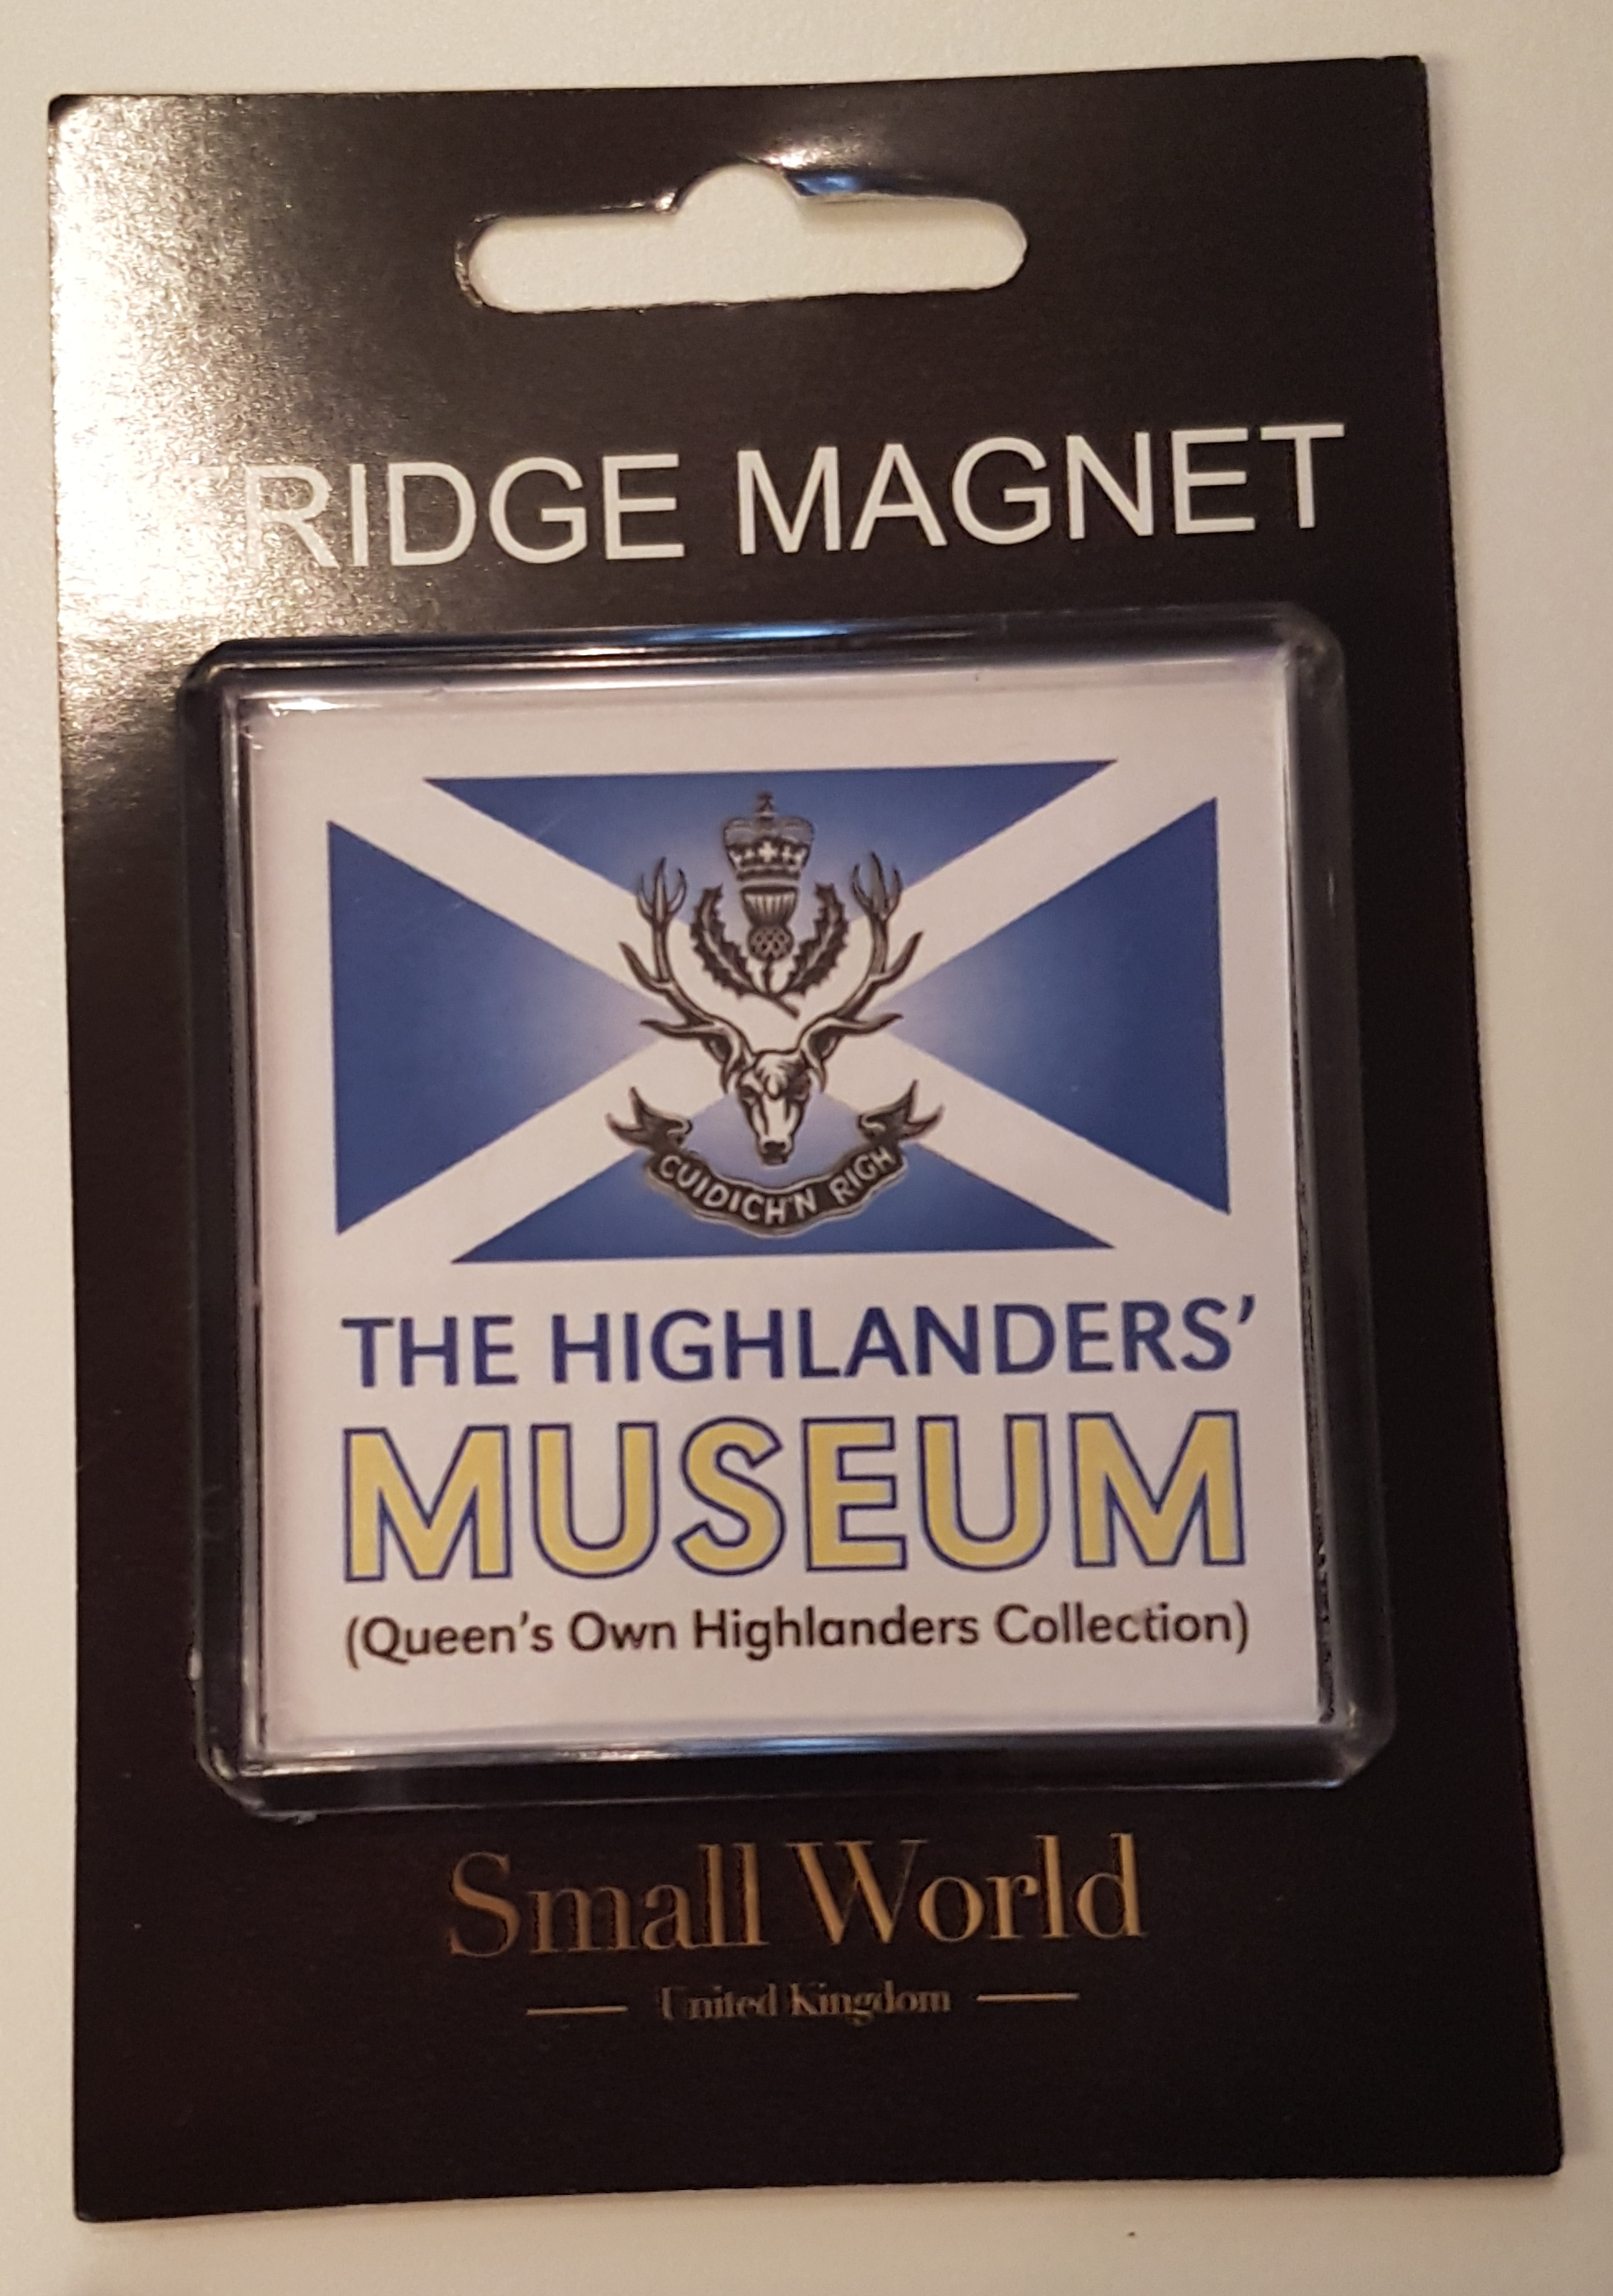 The Highlanders' Museum Fridge Magnet